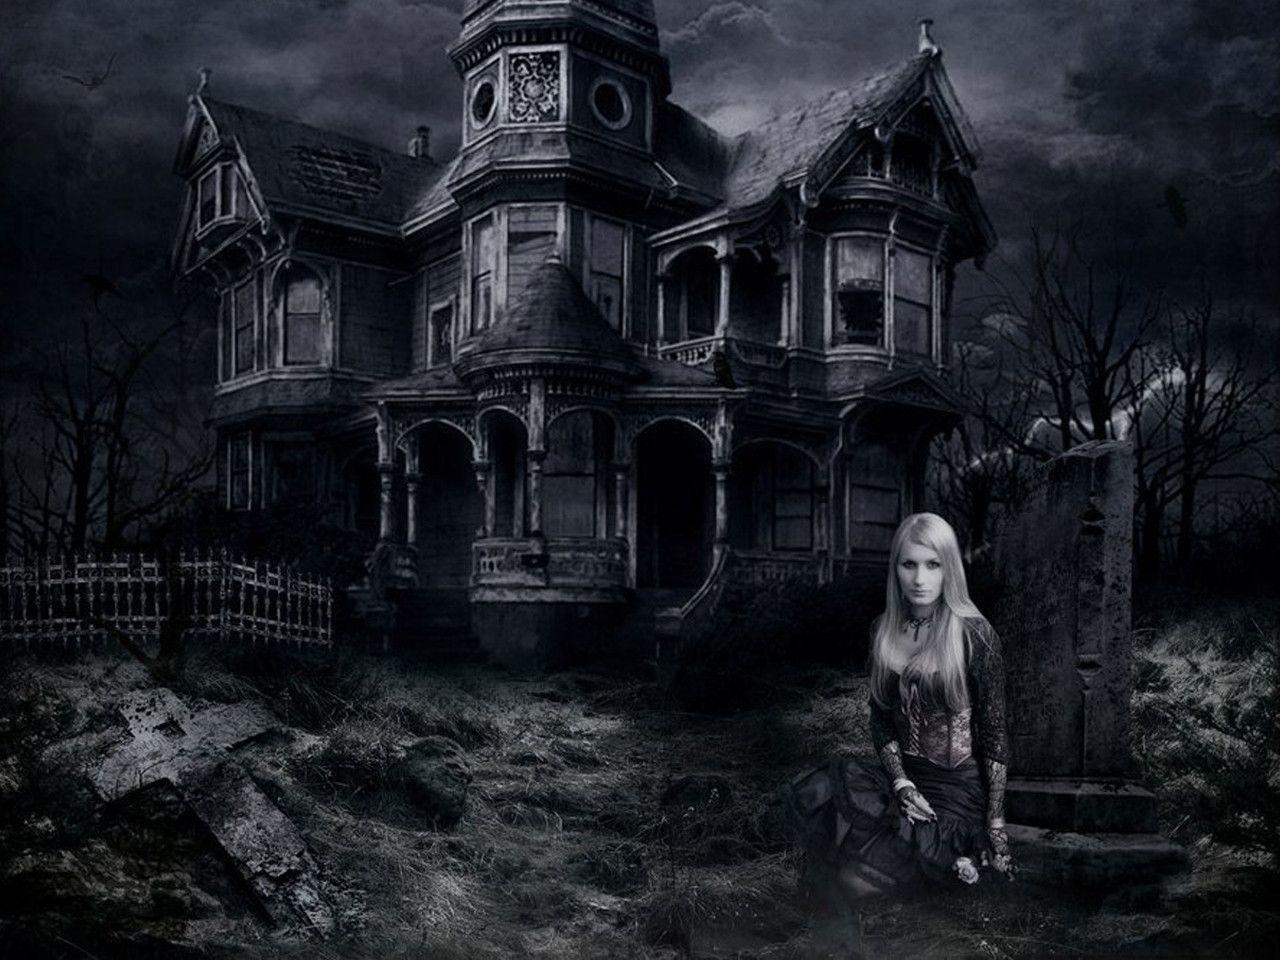 haunted house wallpaper - photo #7